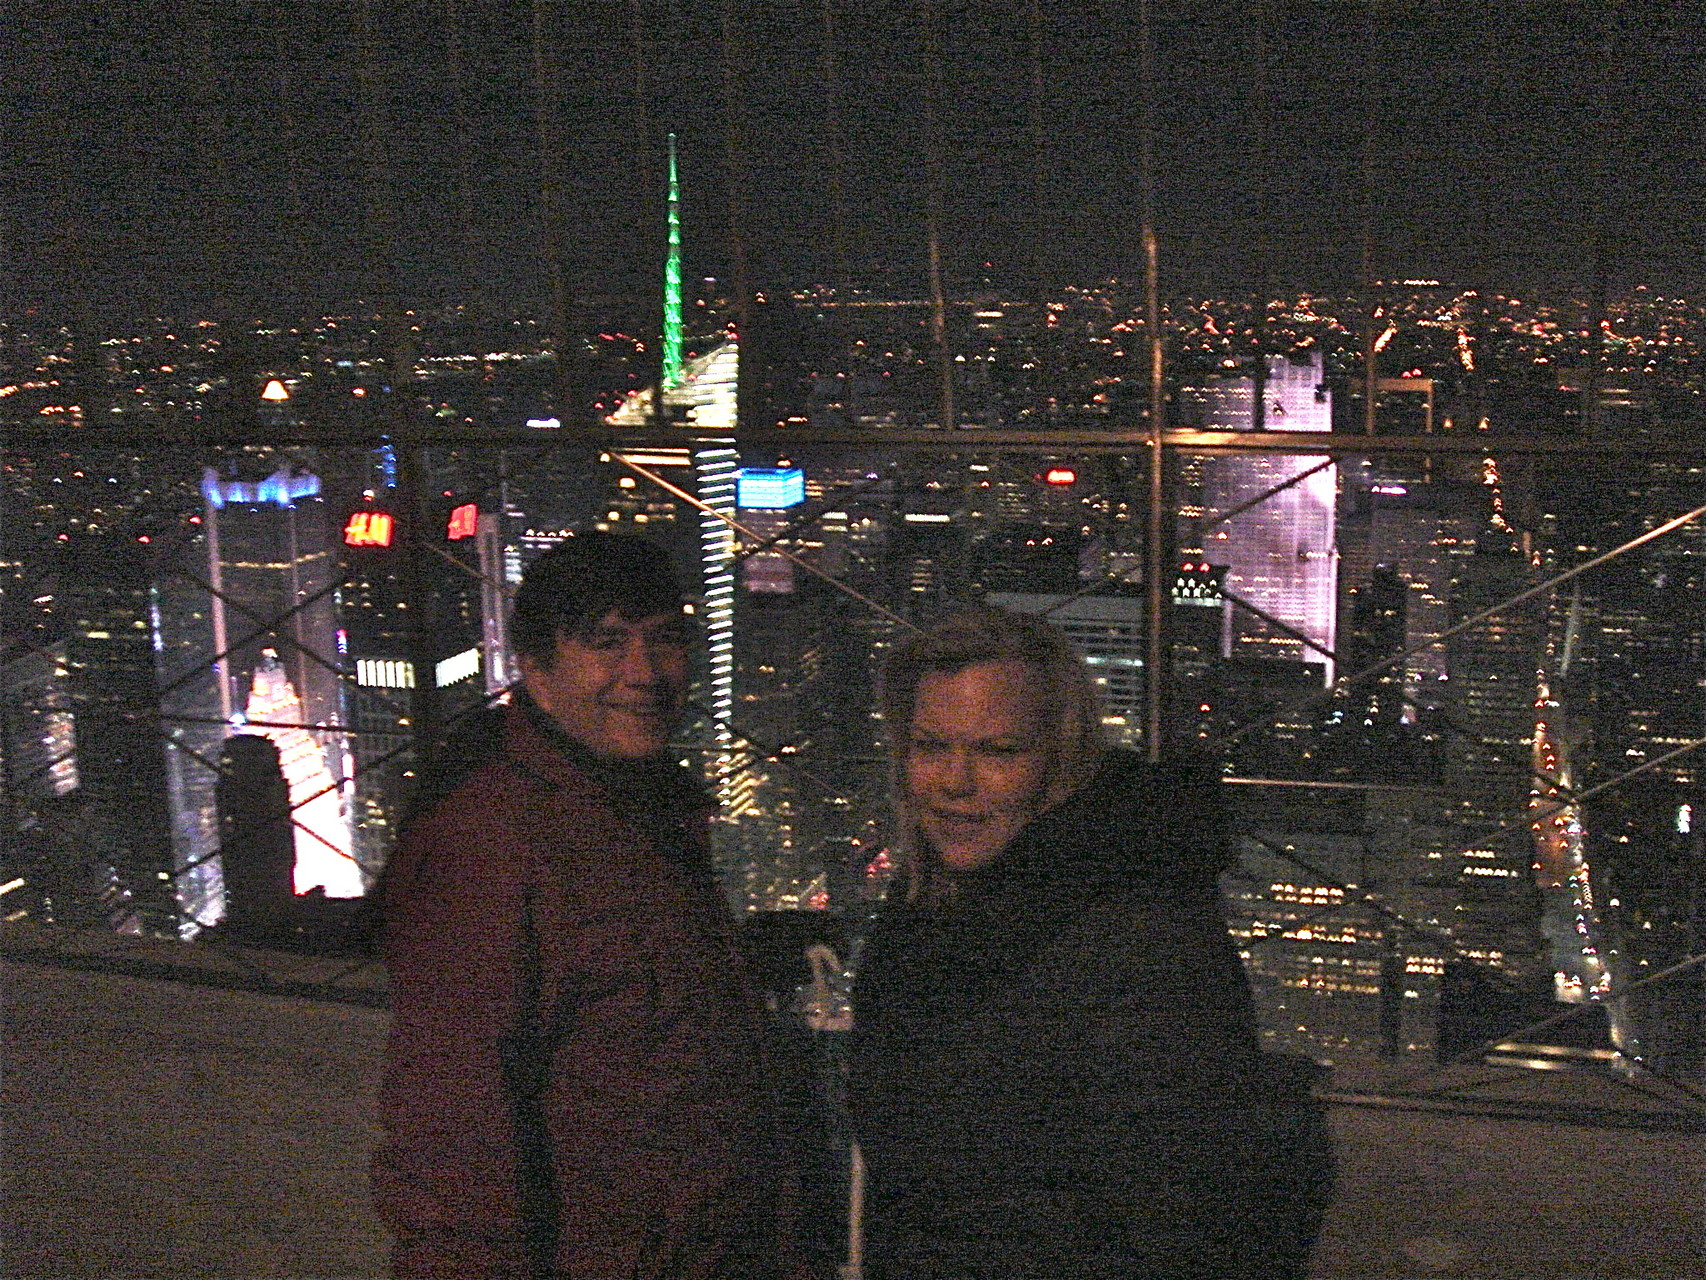 John and Celeste-very cold evening up there!